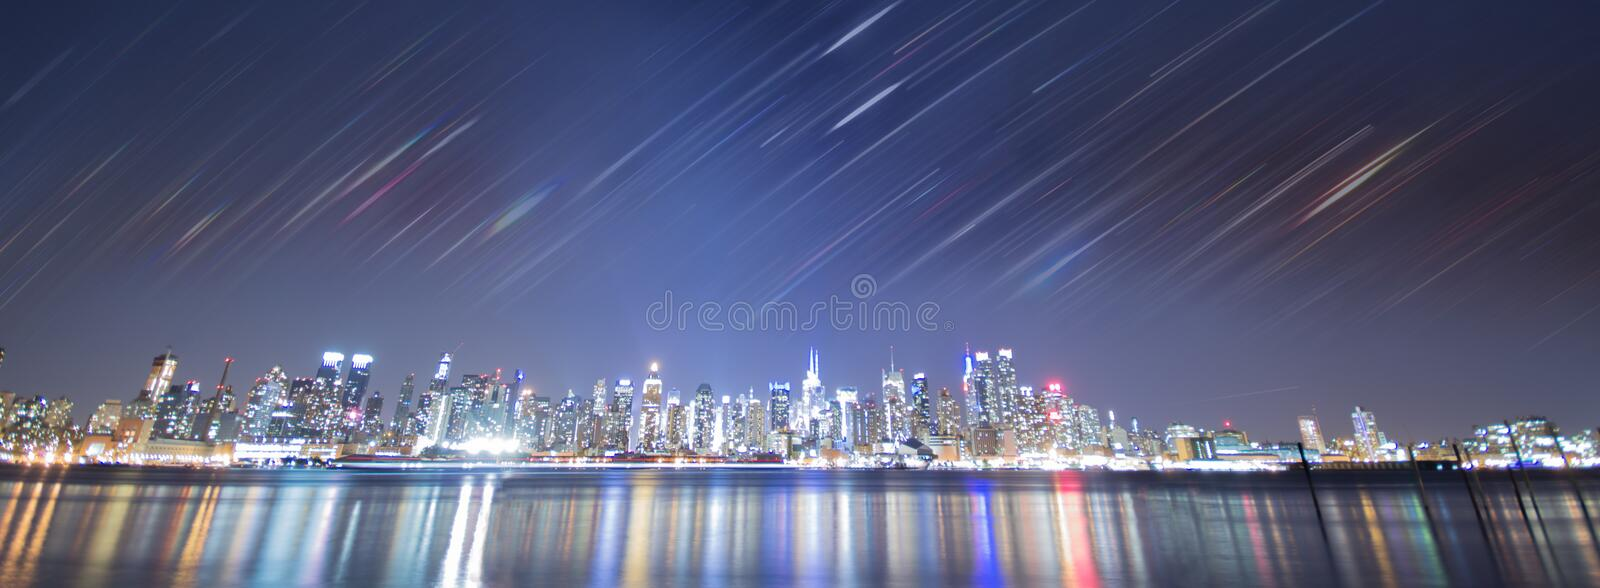 New york city night with rainbow stripes stock images